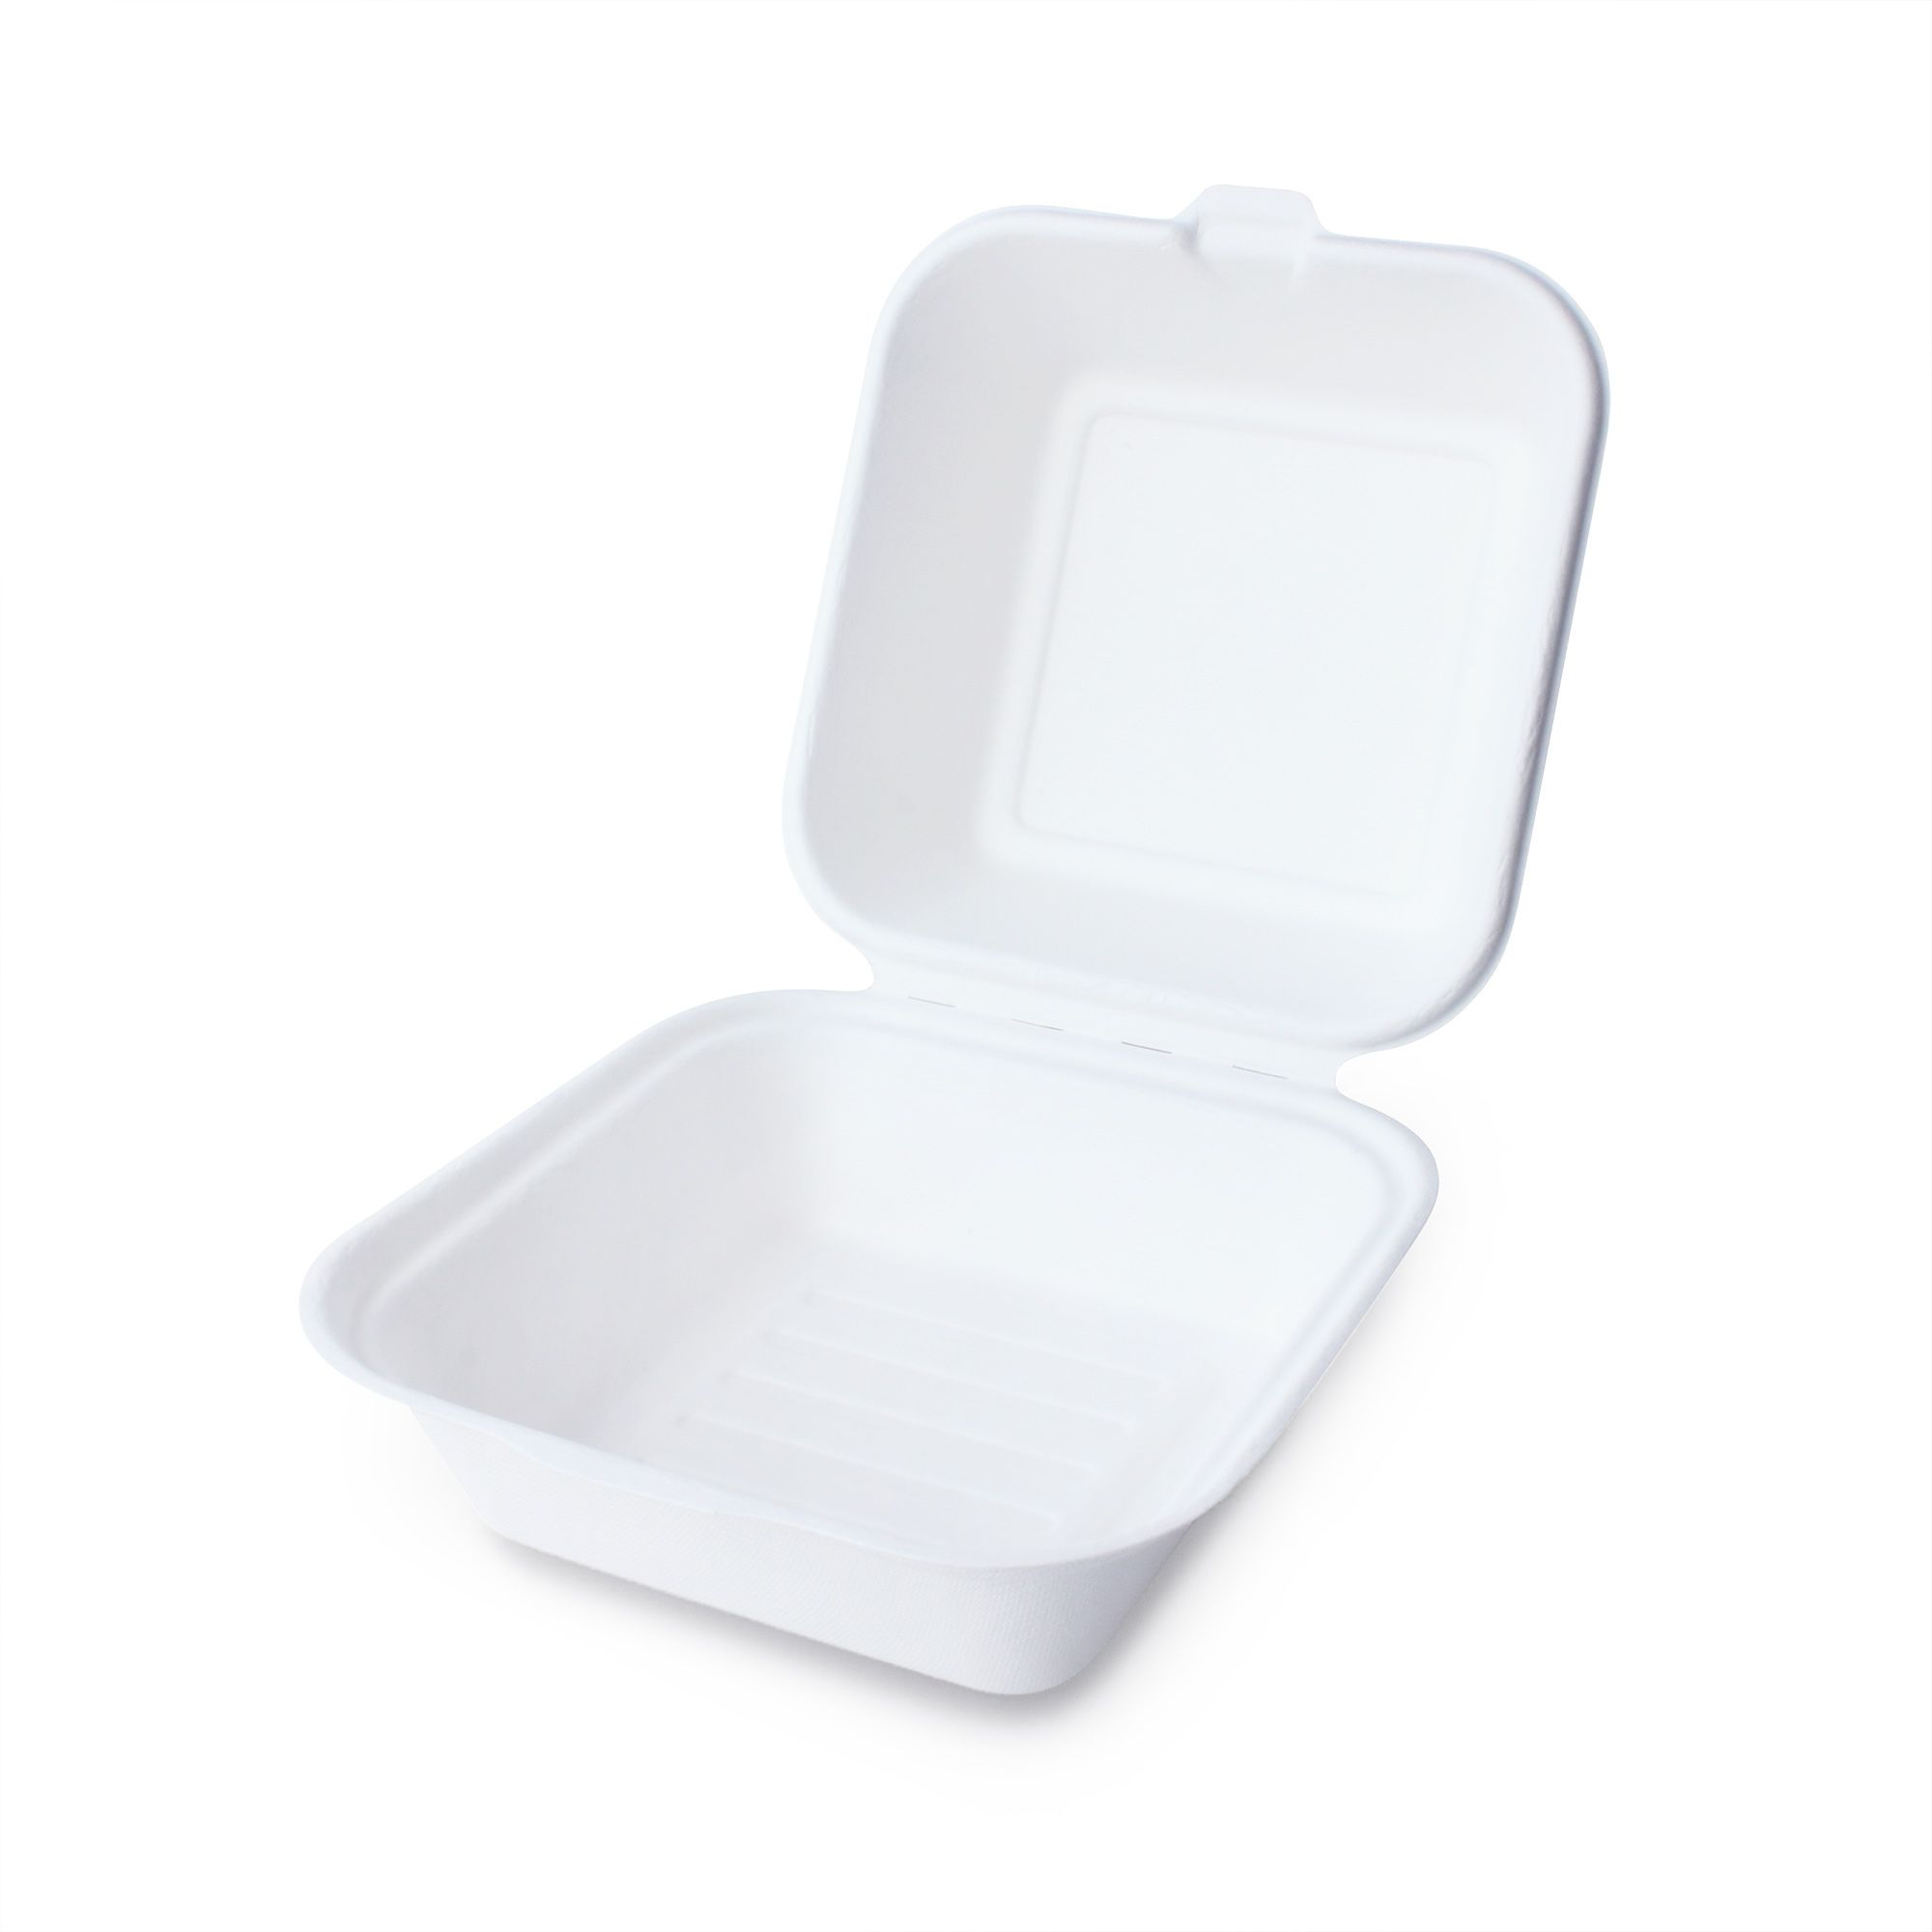 Clamshell Bagasse Hamburger Container - Sugarcane food box for hamburger